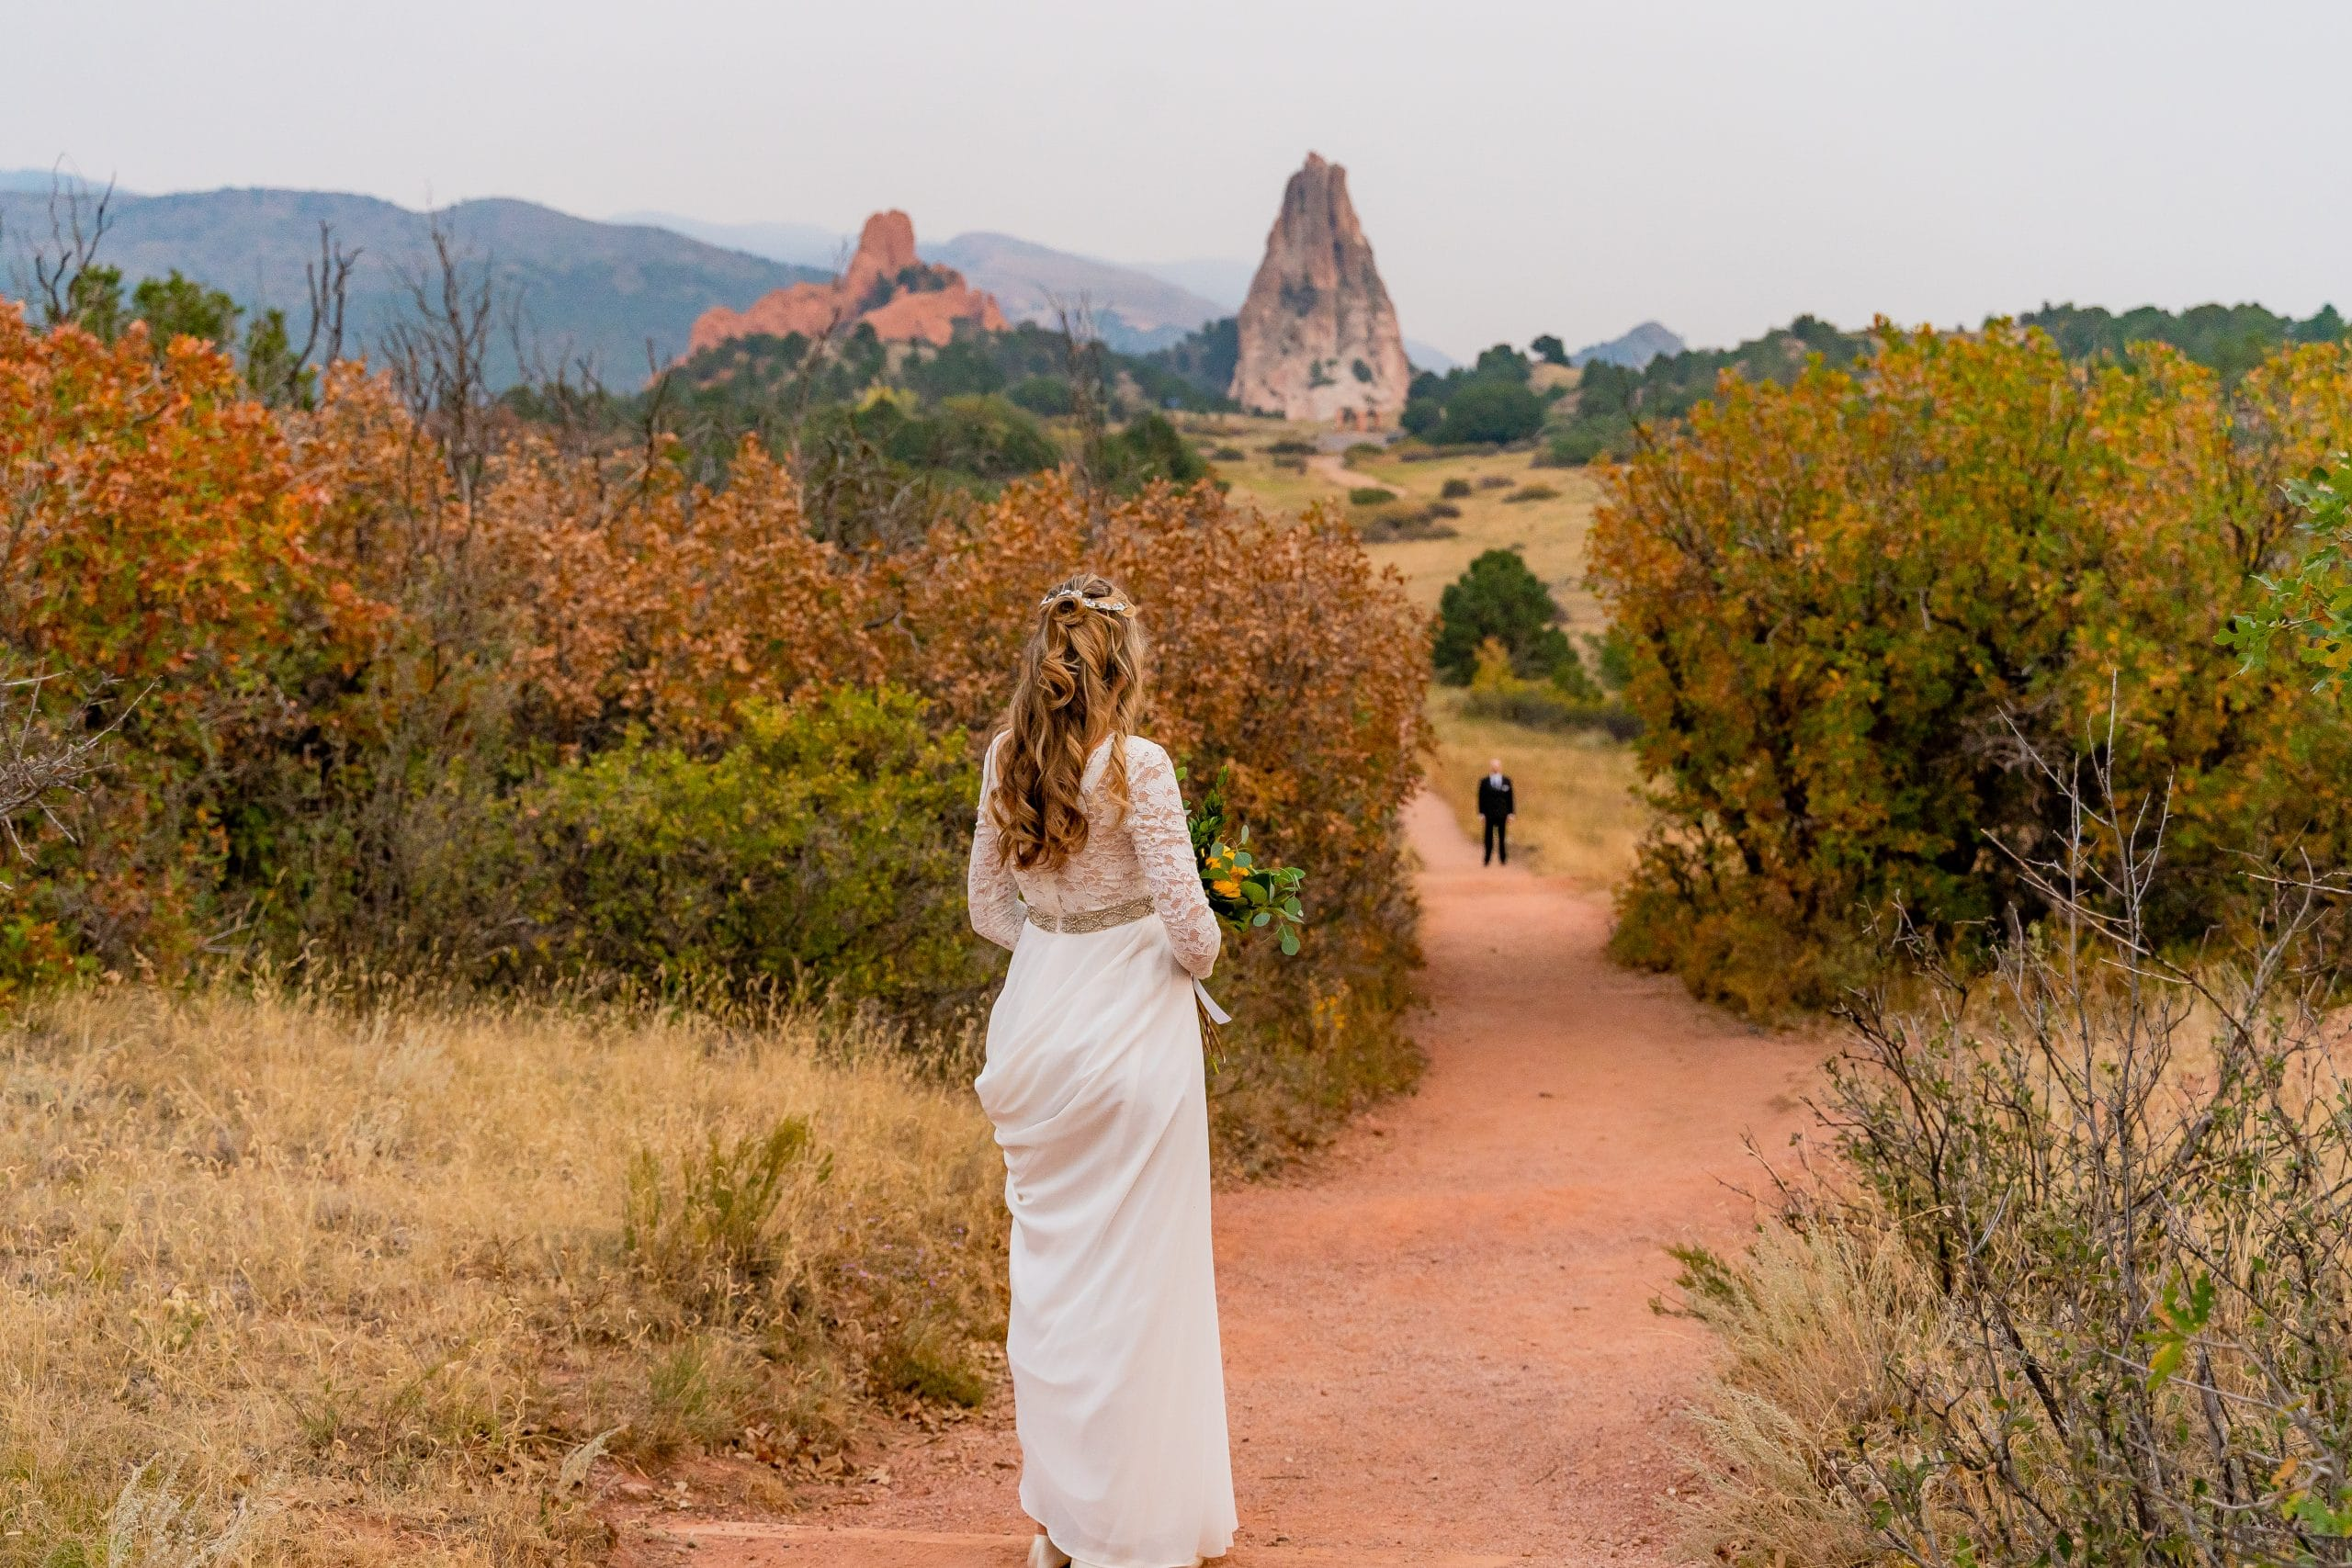 The Aisle Path at Garden of the Gods for an elopement